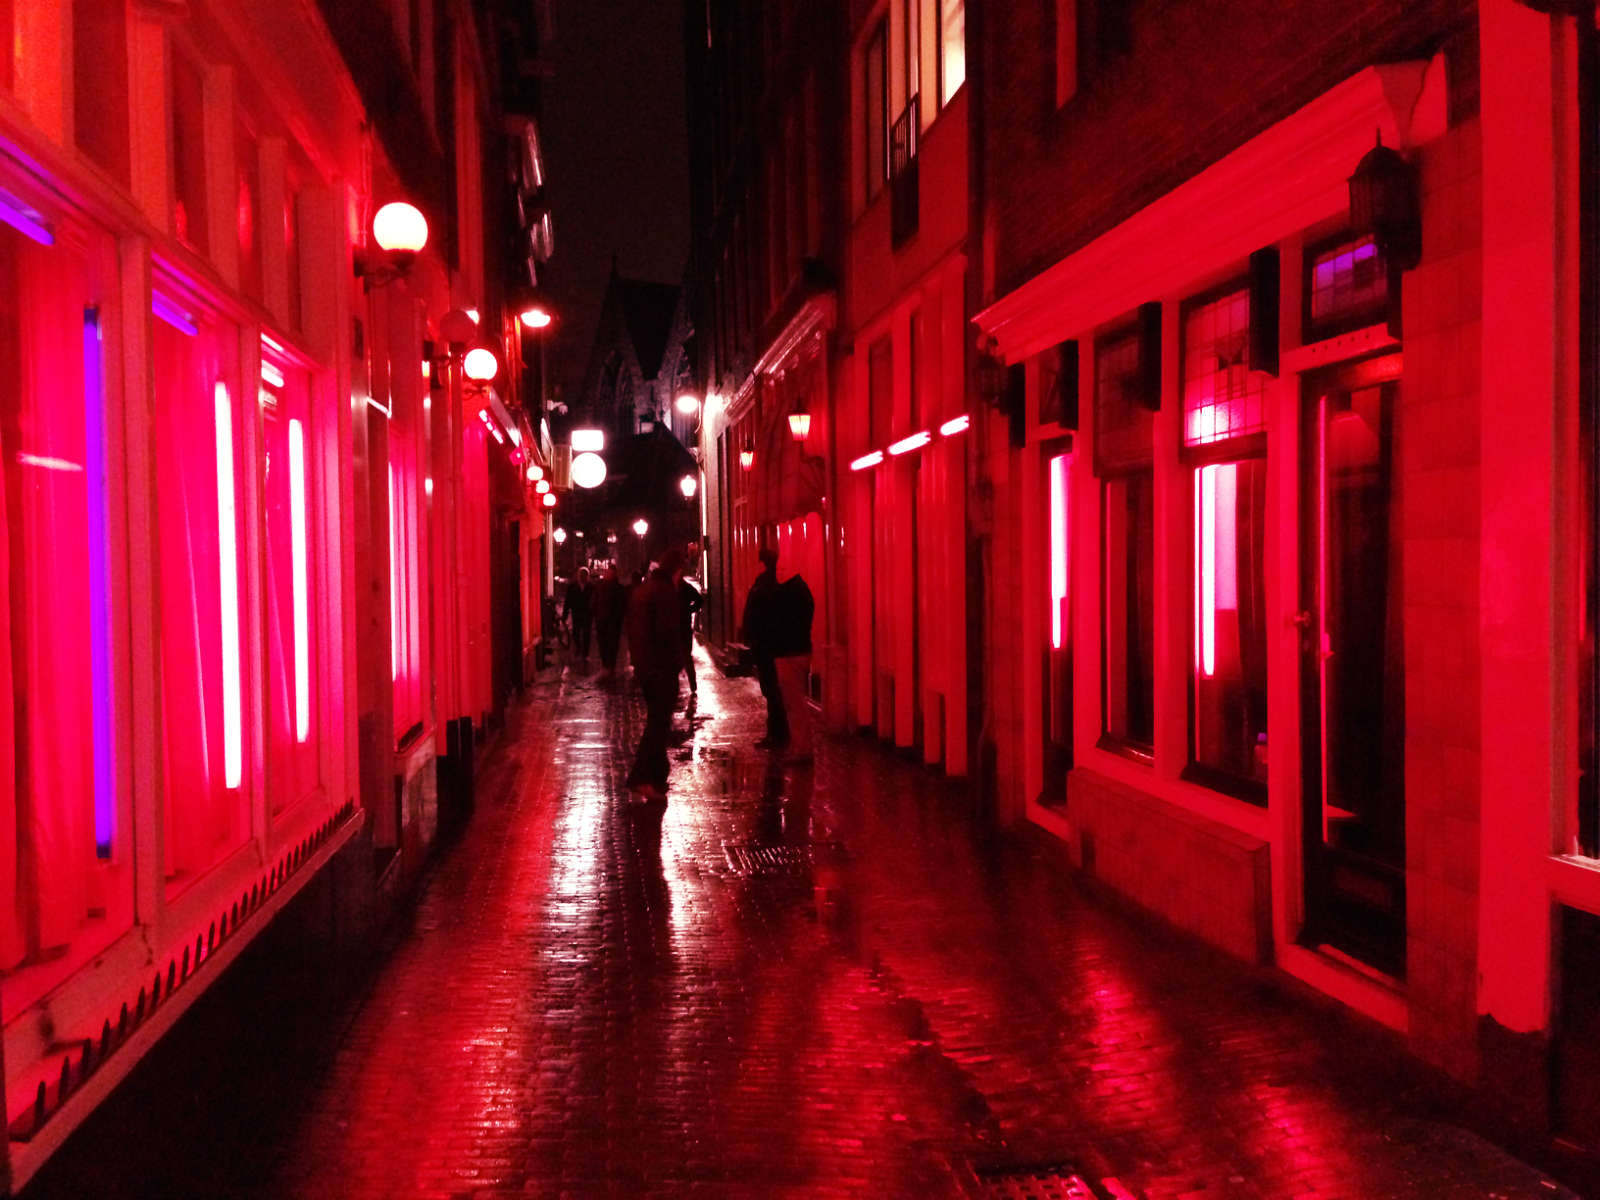 Inside Amsterdam's Red Light District